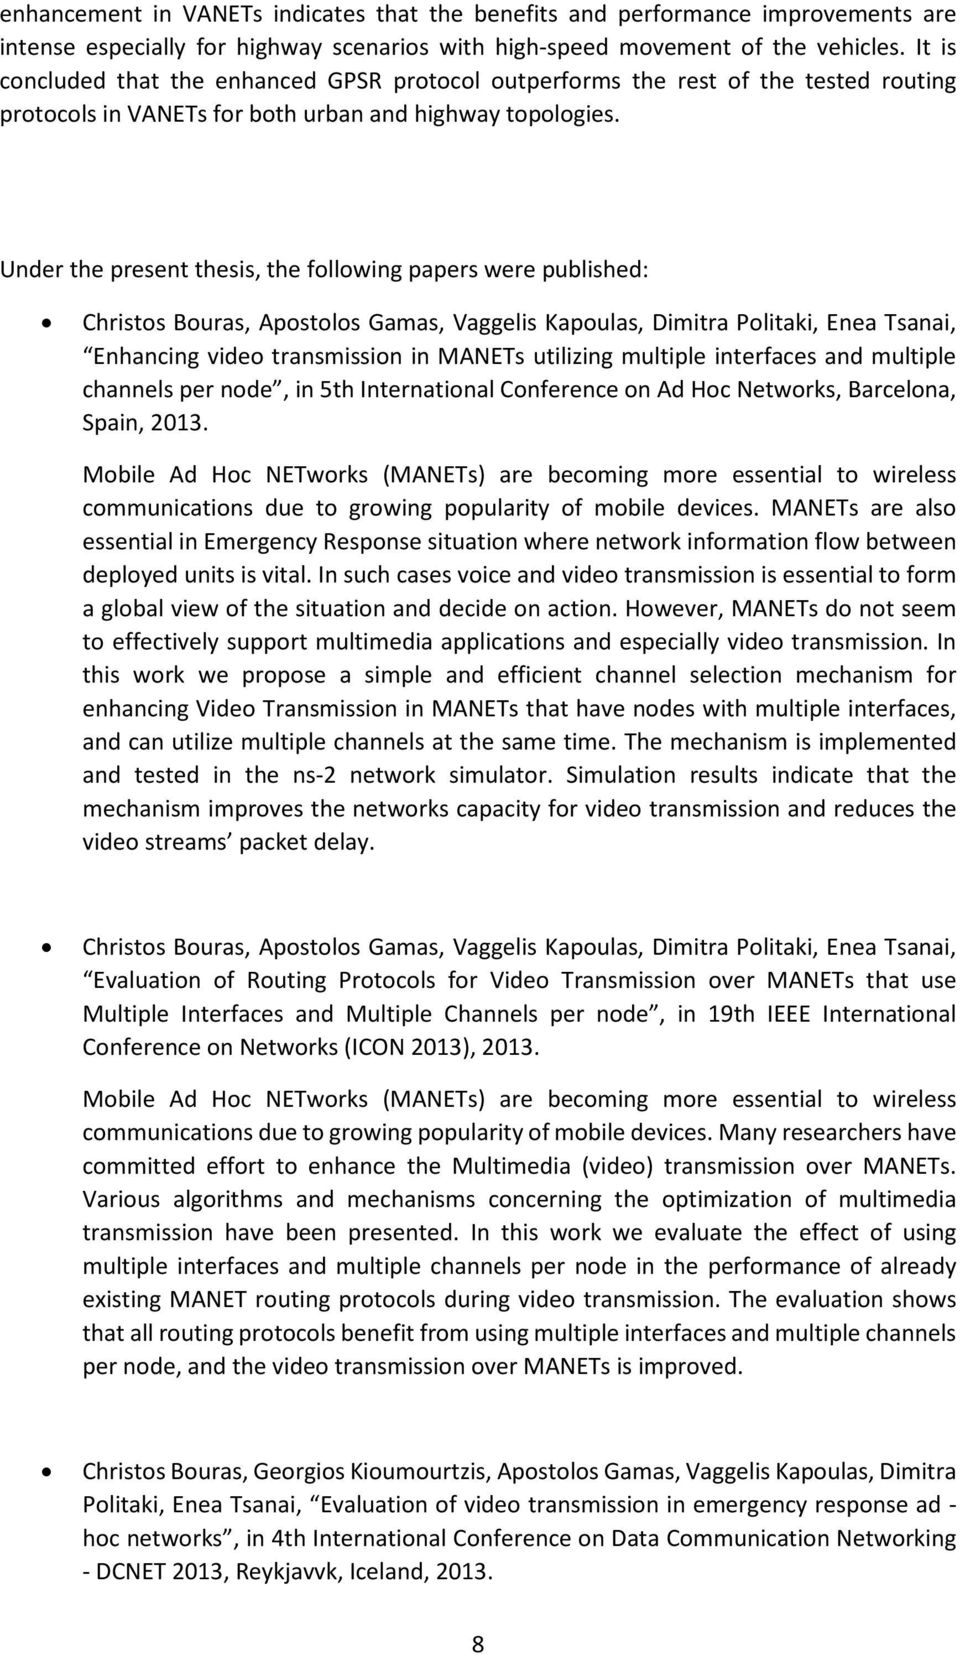 Under the present thesis, the following papers were published: Christos Bouras, Apostolos Gamas, Vaggelis Kapoulas, Dimitra Politaki, Enea Tsanai, Enhancing video transmission in MANETs utilizing